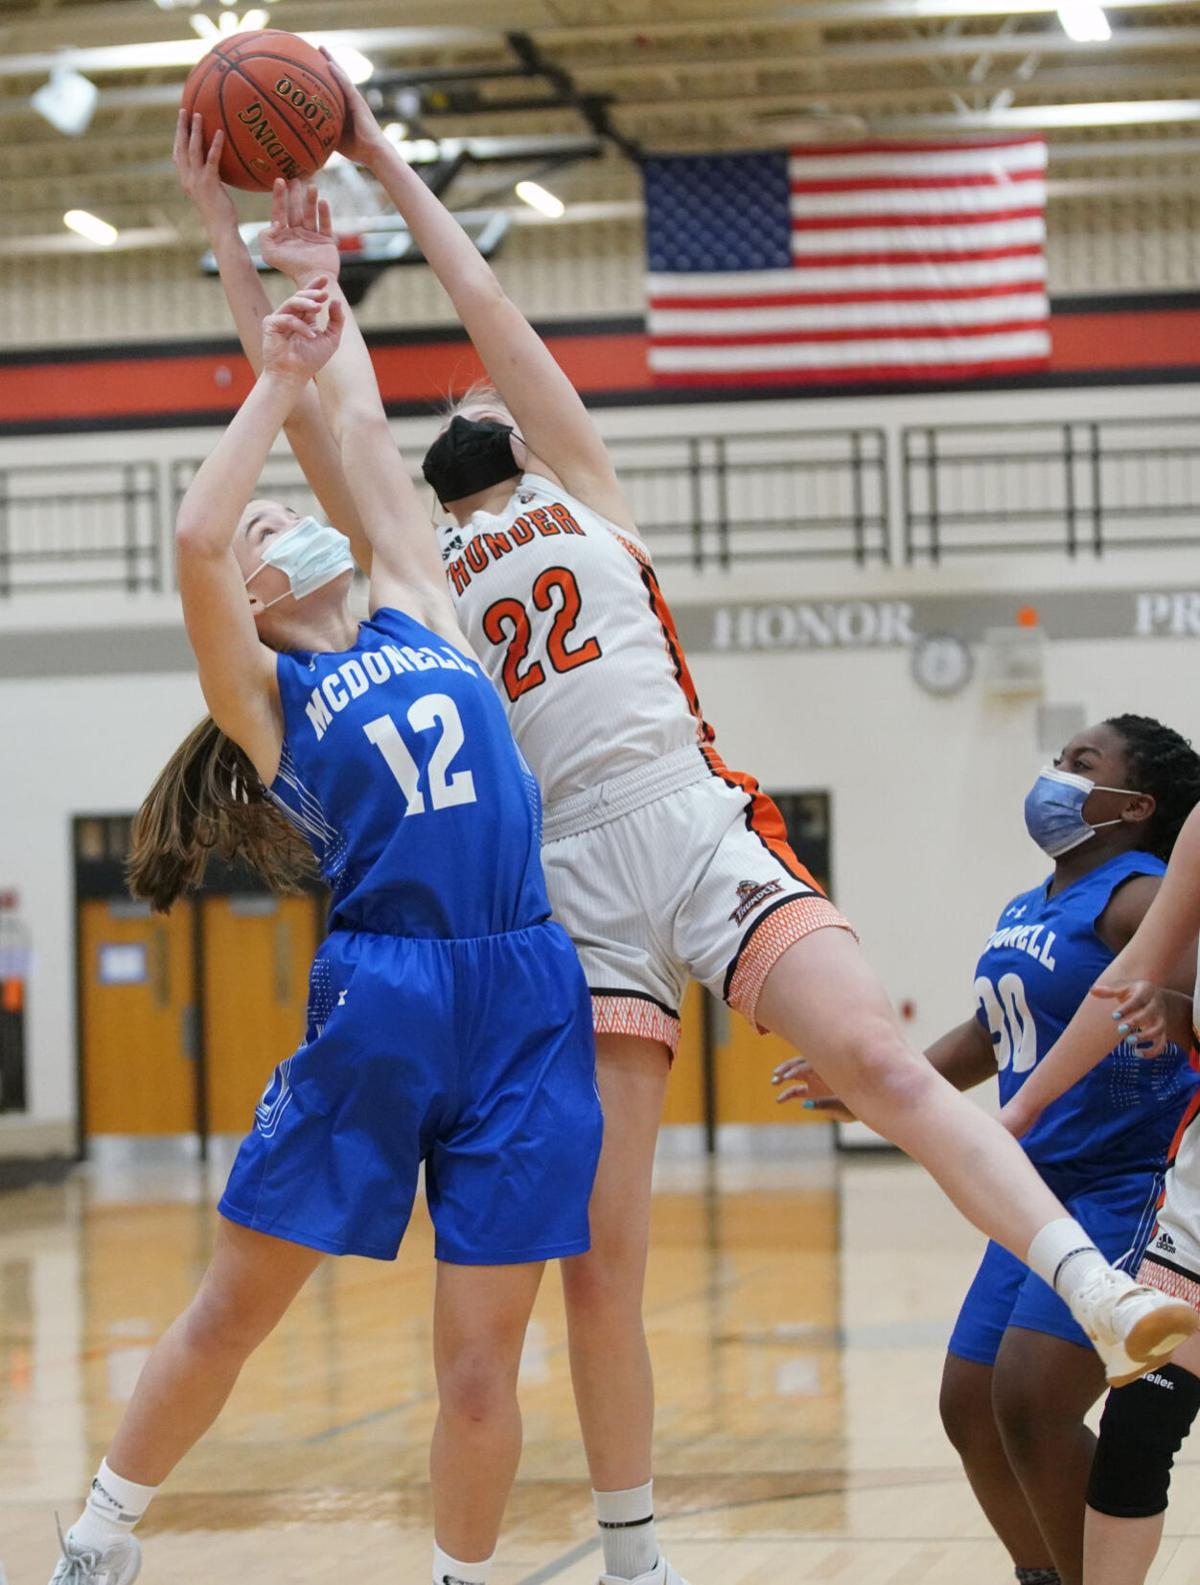 Osseo-Fairchild McDonell girls basketball